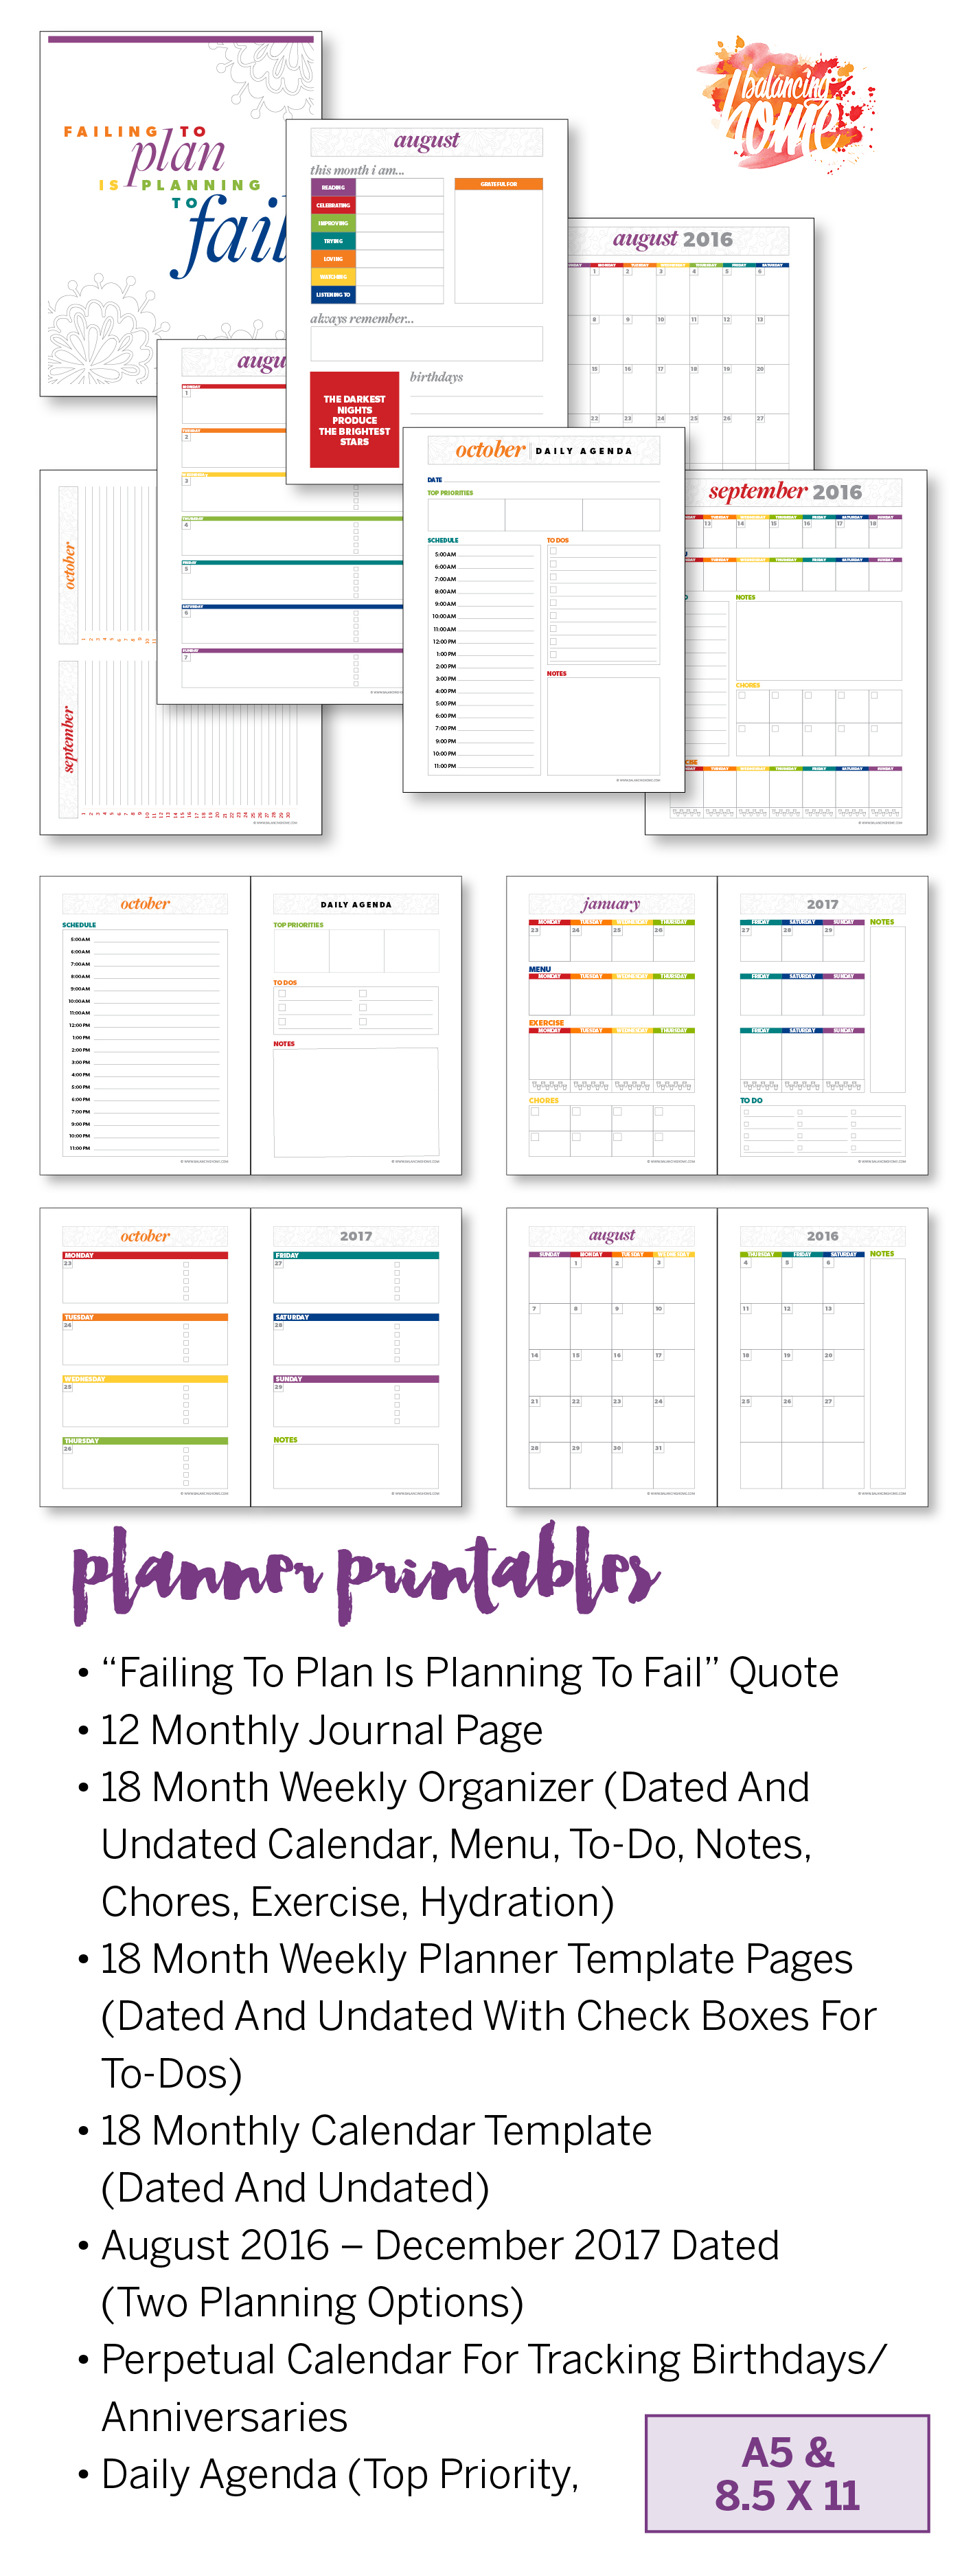 photo about Organization Printables named Acquire Ready With This Planner and All the Printables